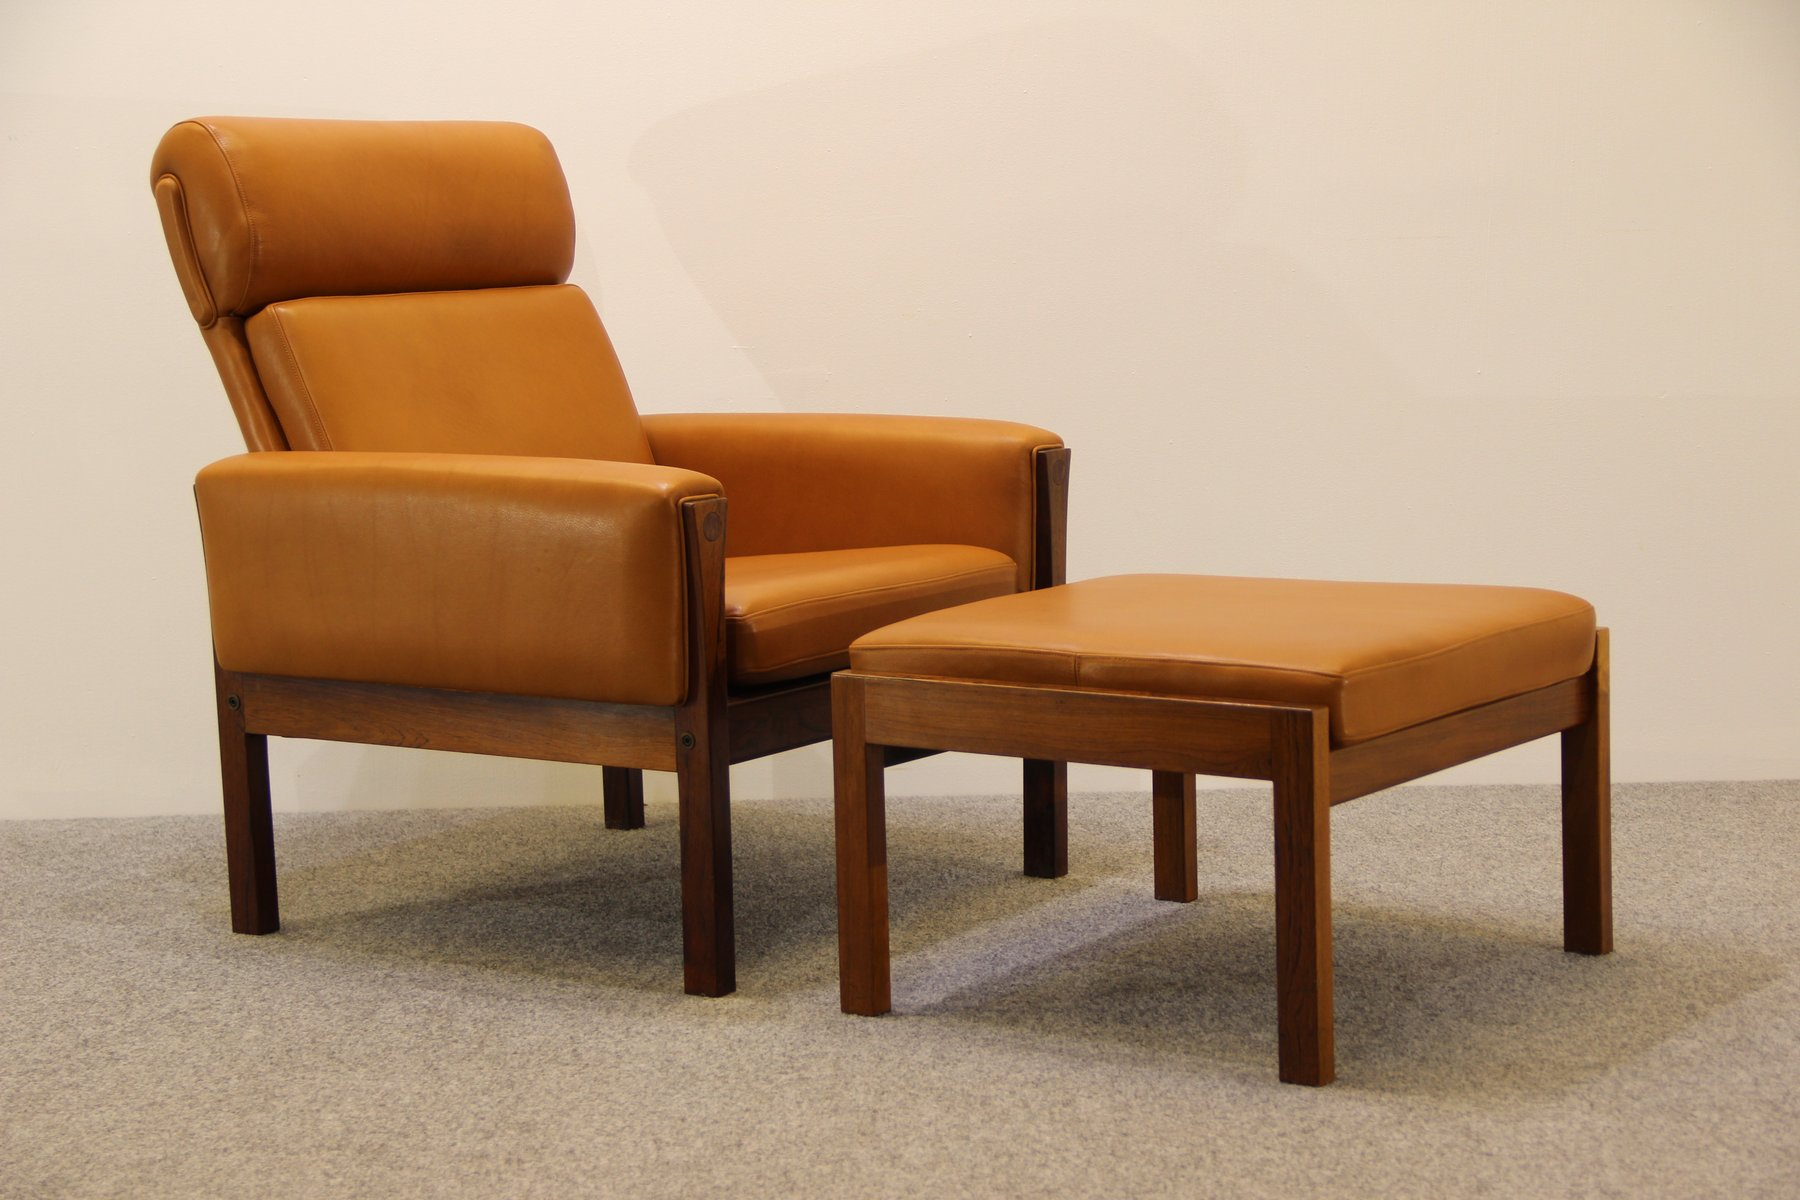 Mid Century AP62 Lounge Chair U0026 Ottoman By Hans J. Wegner For AP Stolen